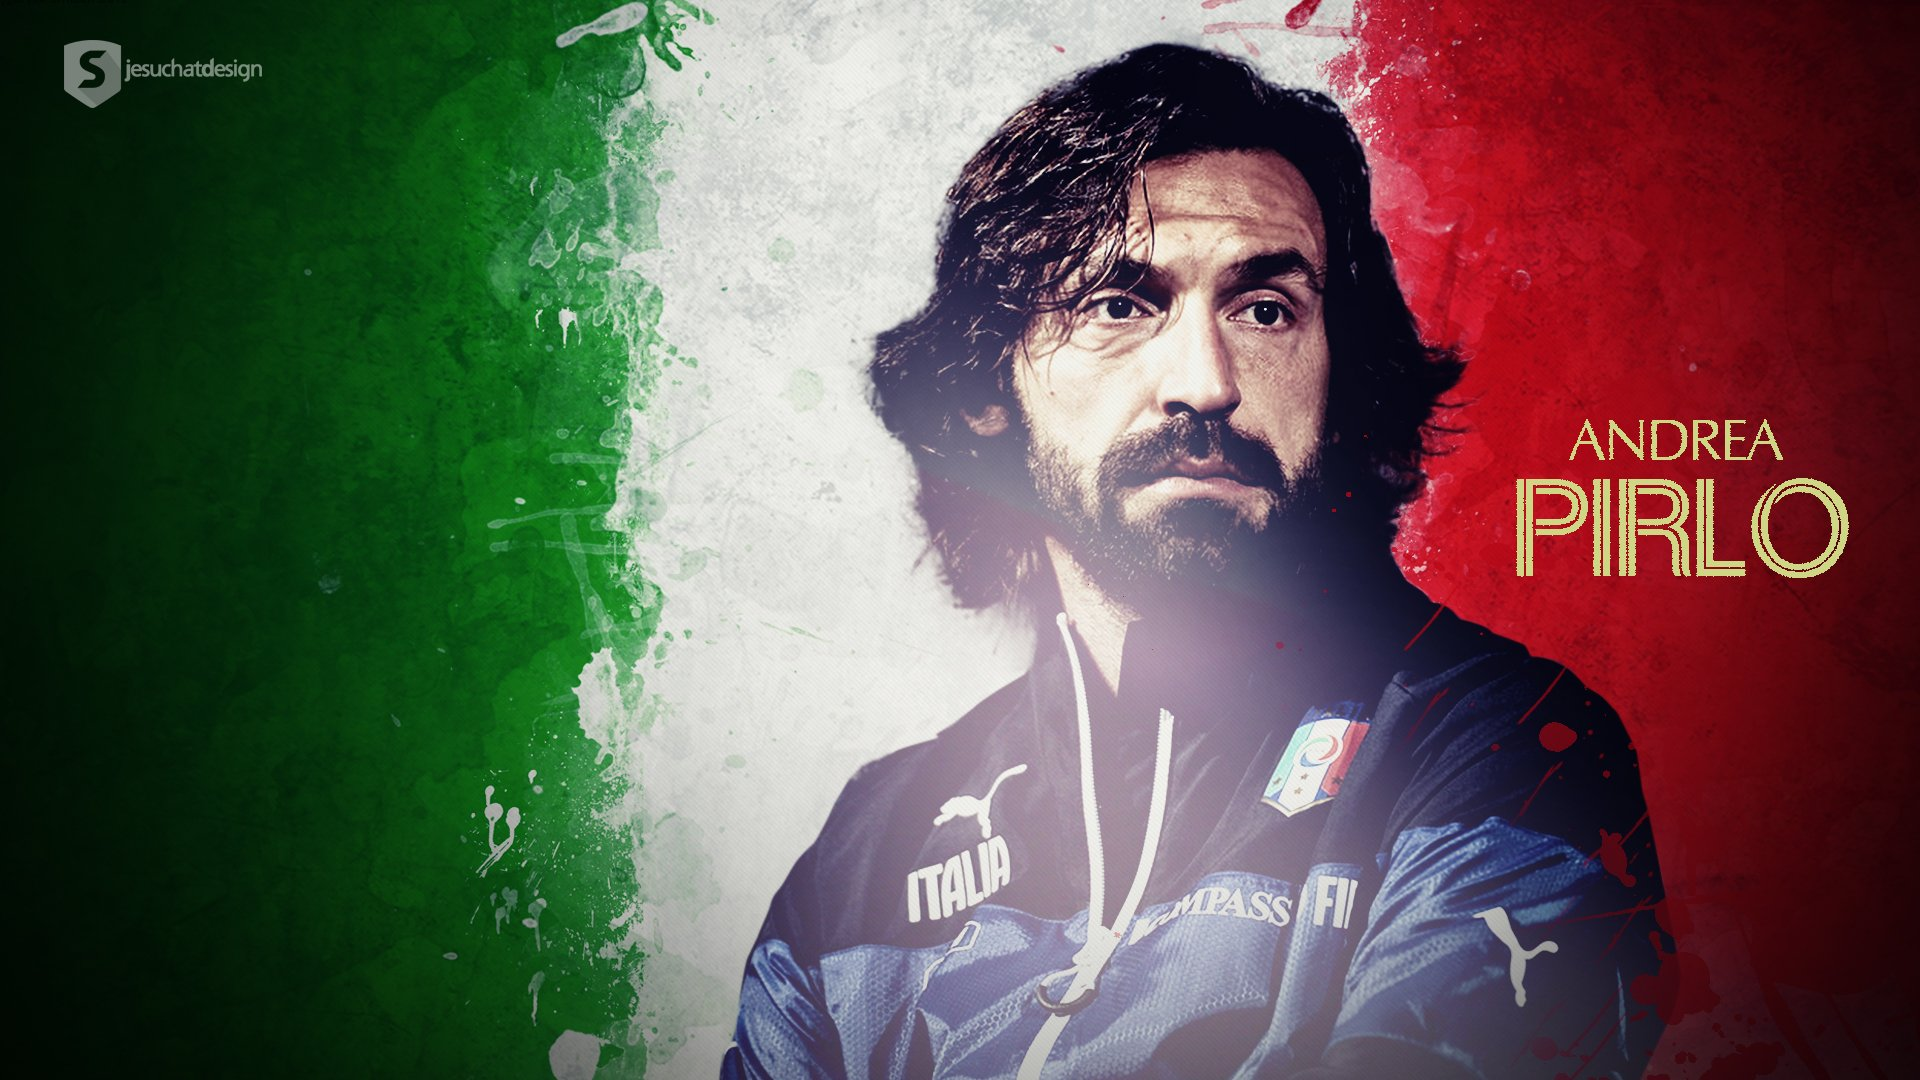 1920x1080 - Andrea Pirlo Wallpapers 29